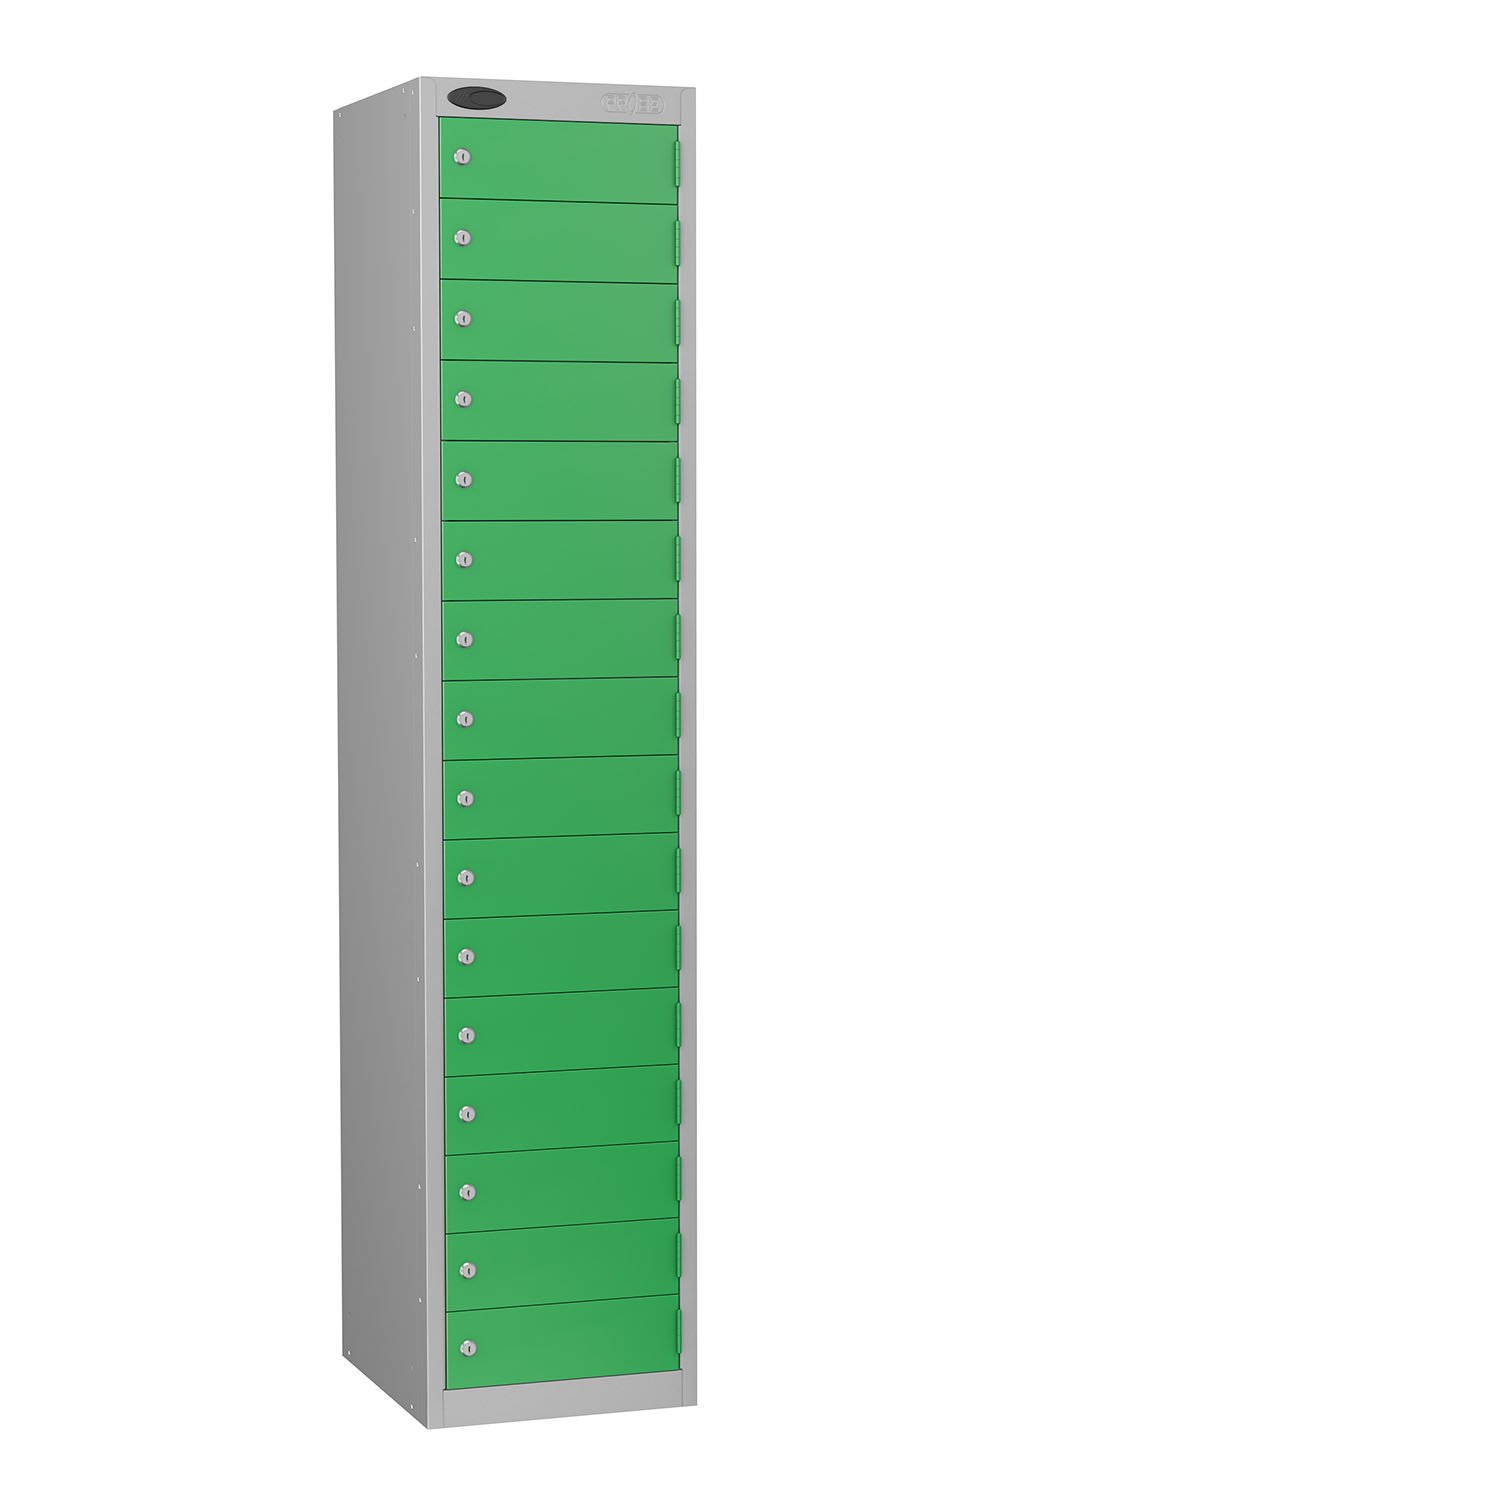 Probe 16 doors small compartments lockers in green colour